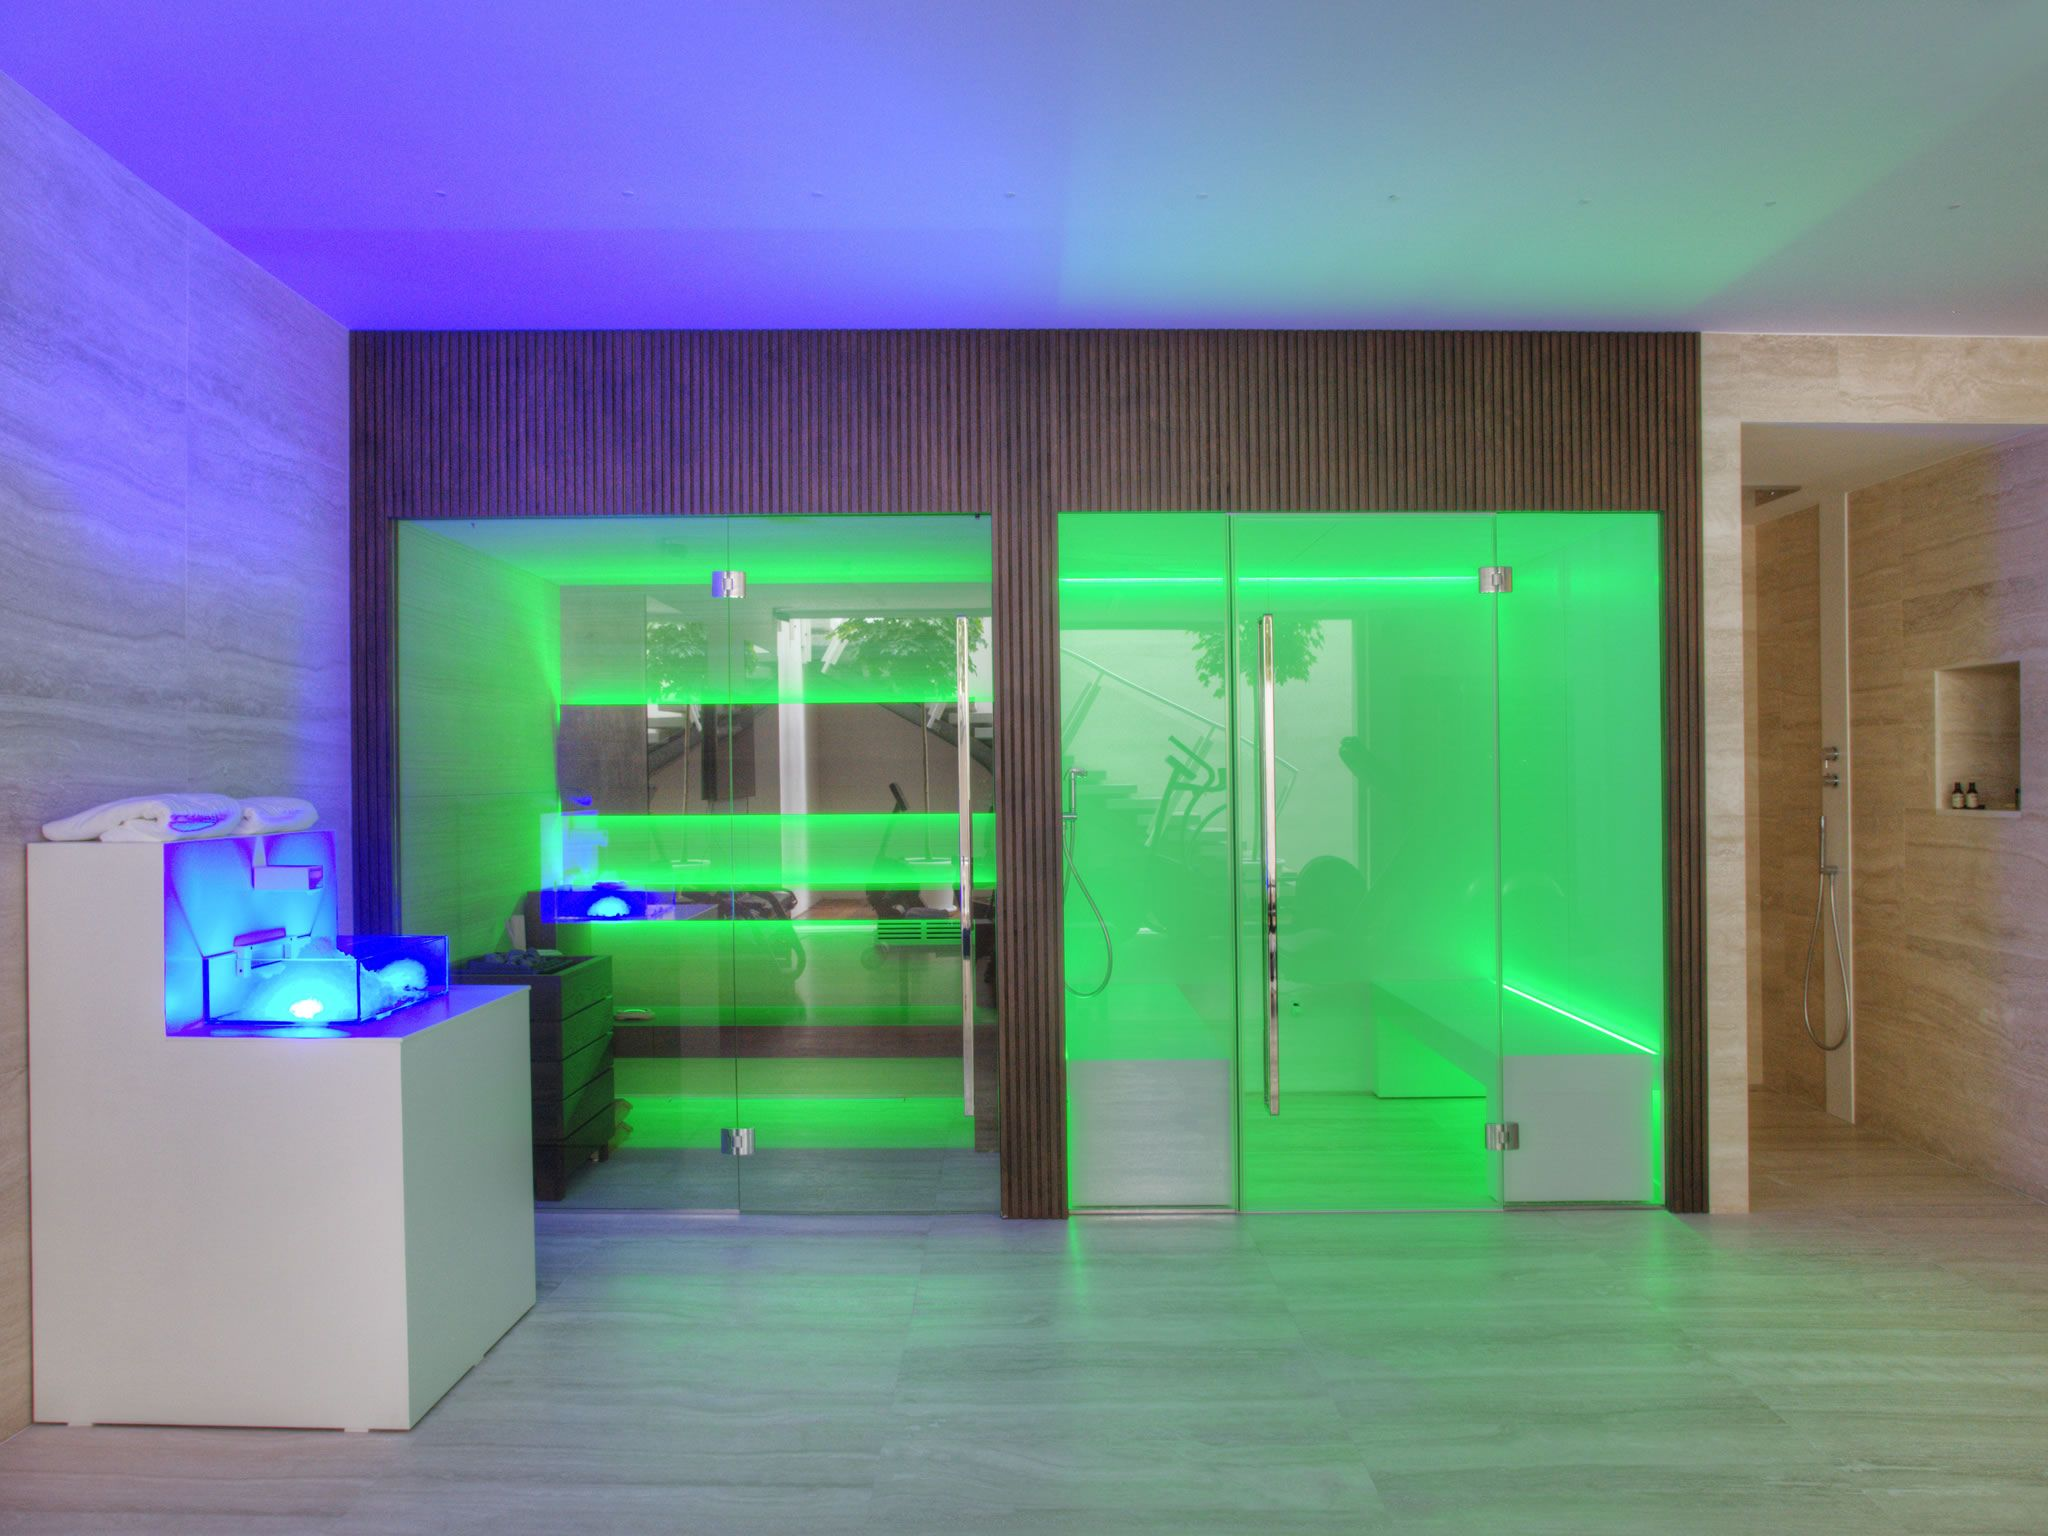 Relax at The Mediterrano Hotel in Jesolo, Venice. In the wellness area you can find Carmenta products, such as the sauna, the steam bath, the ice fountain and the water games with the ice buckets and lots of showers.